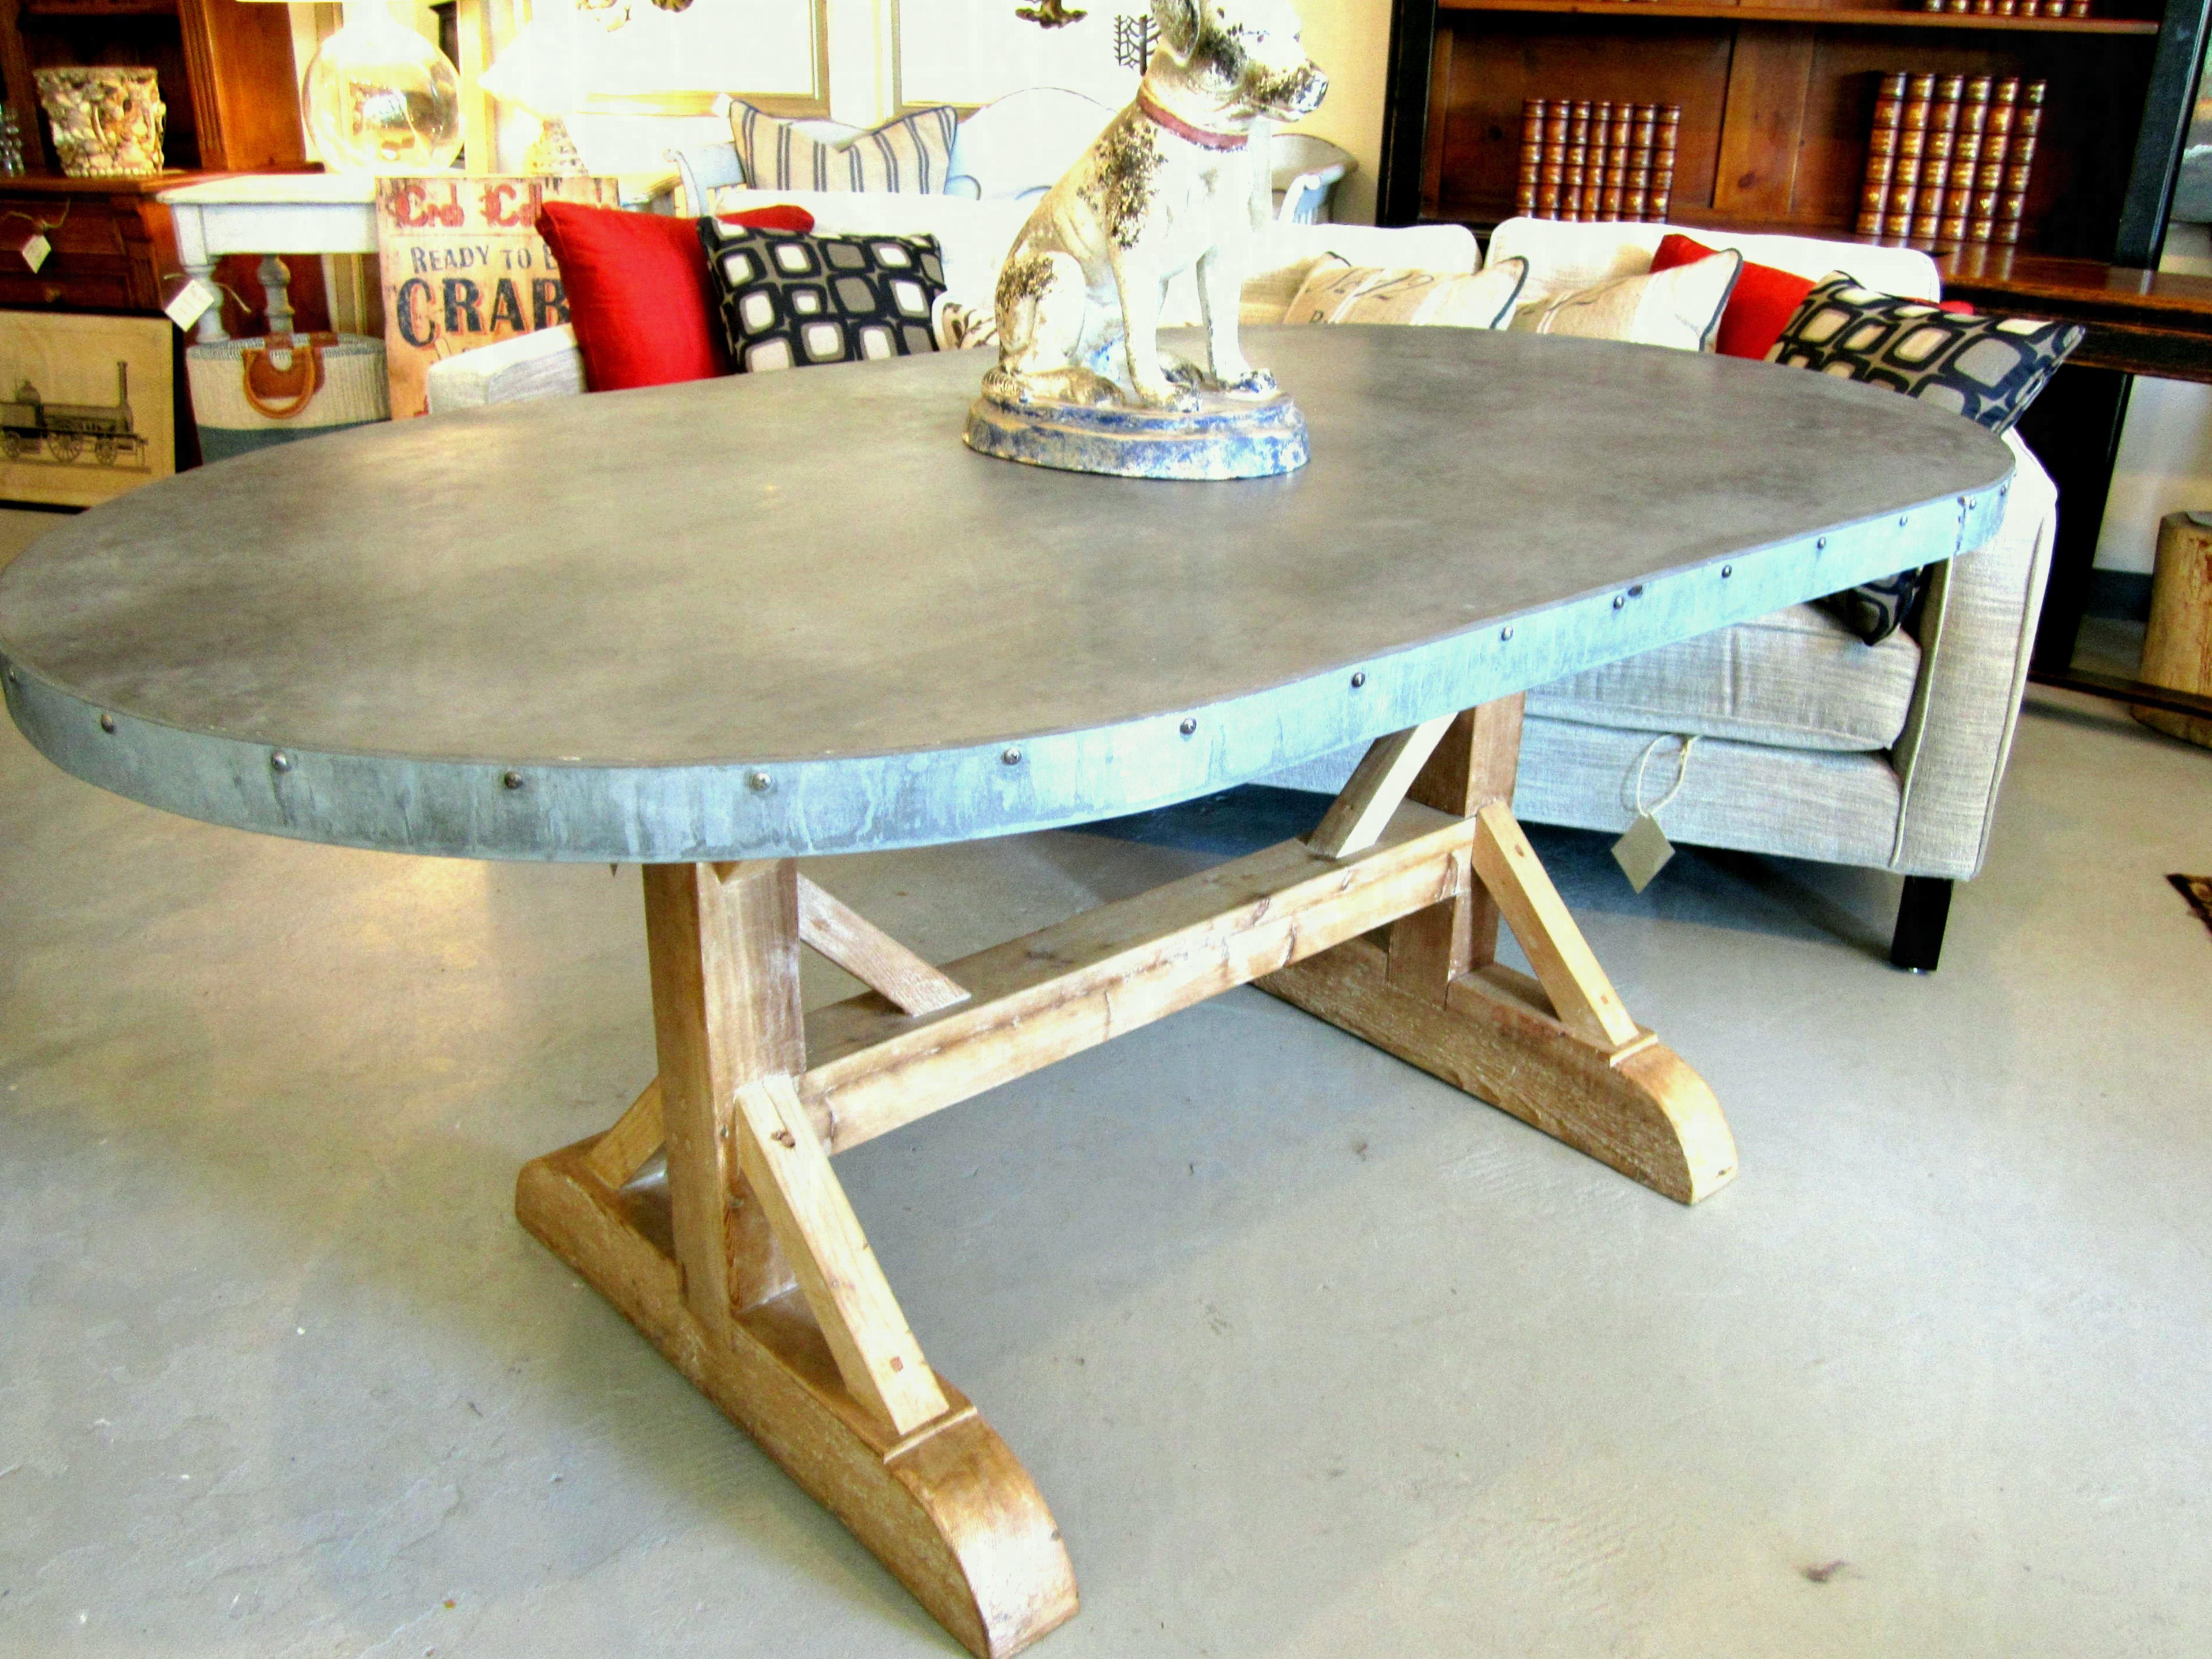 Concrete Diy Housing Project Cool Coffee Tables Best